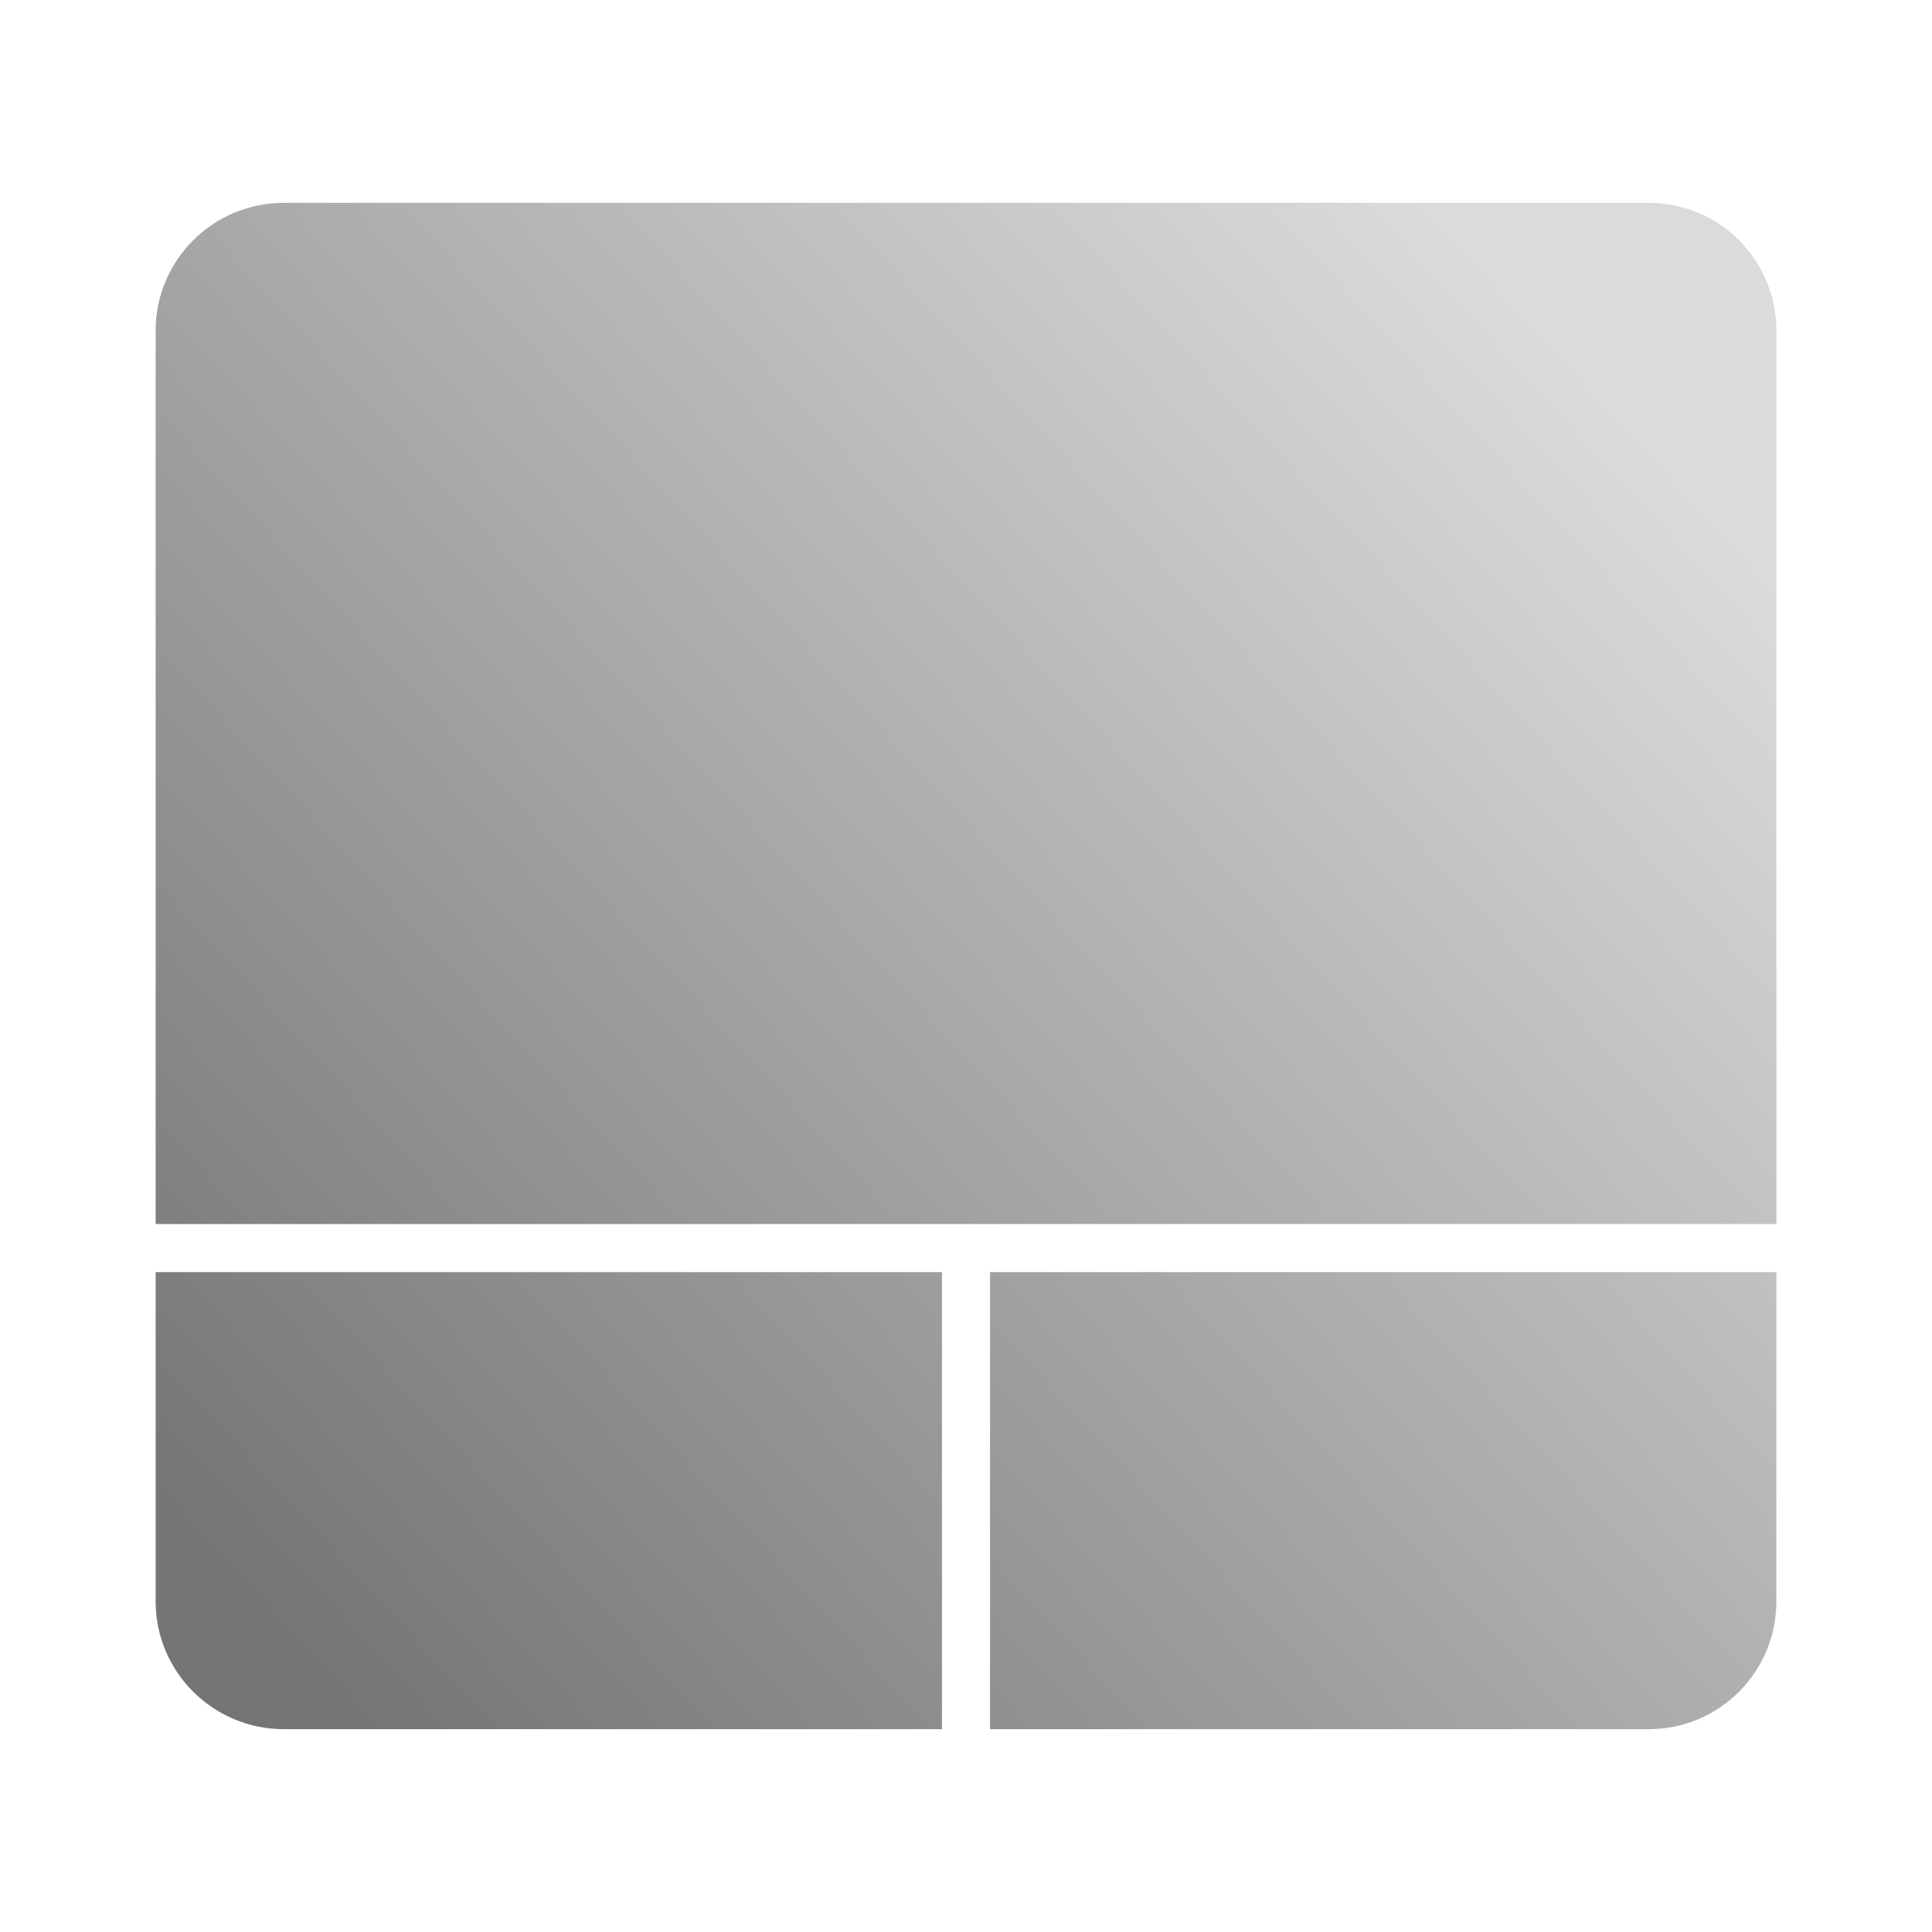 Touchpad Icon by kuba